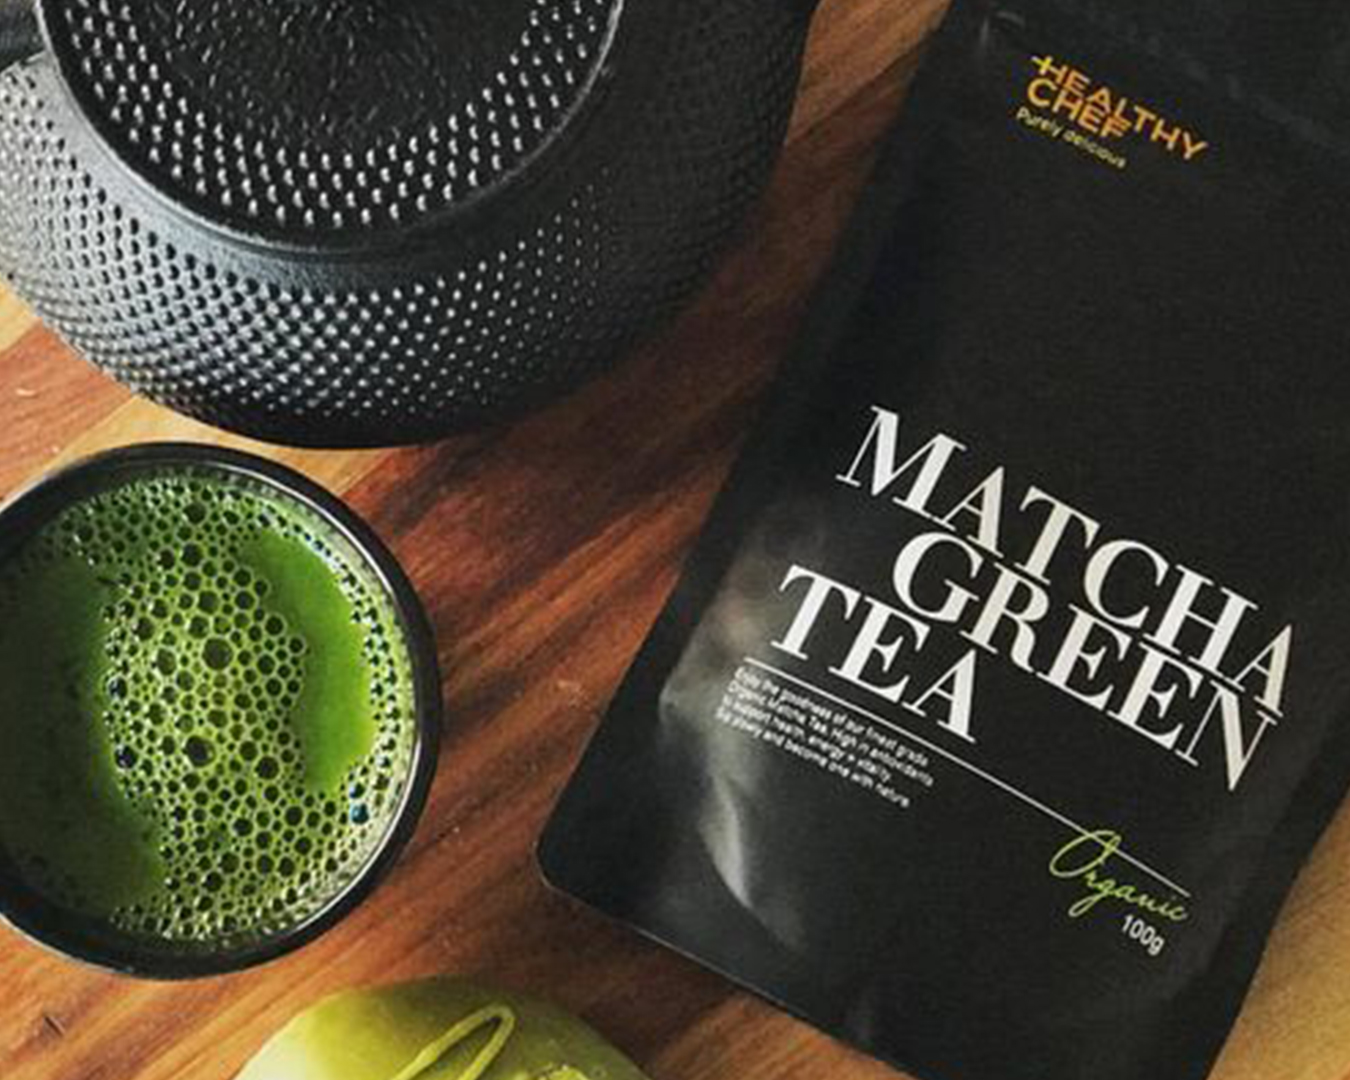 Matcha Tea pouch from The Healthy Chef